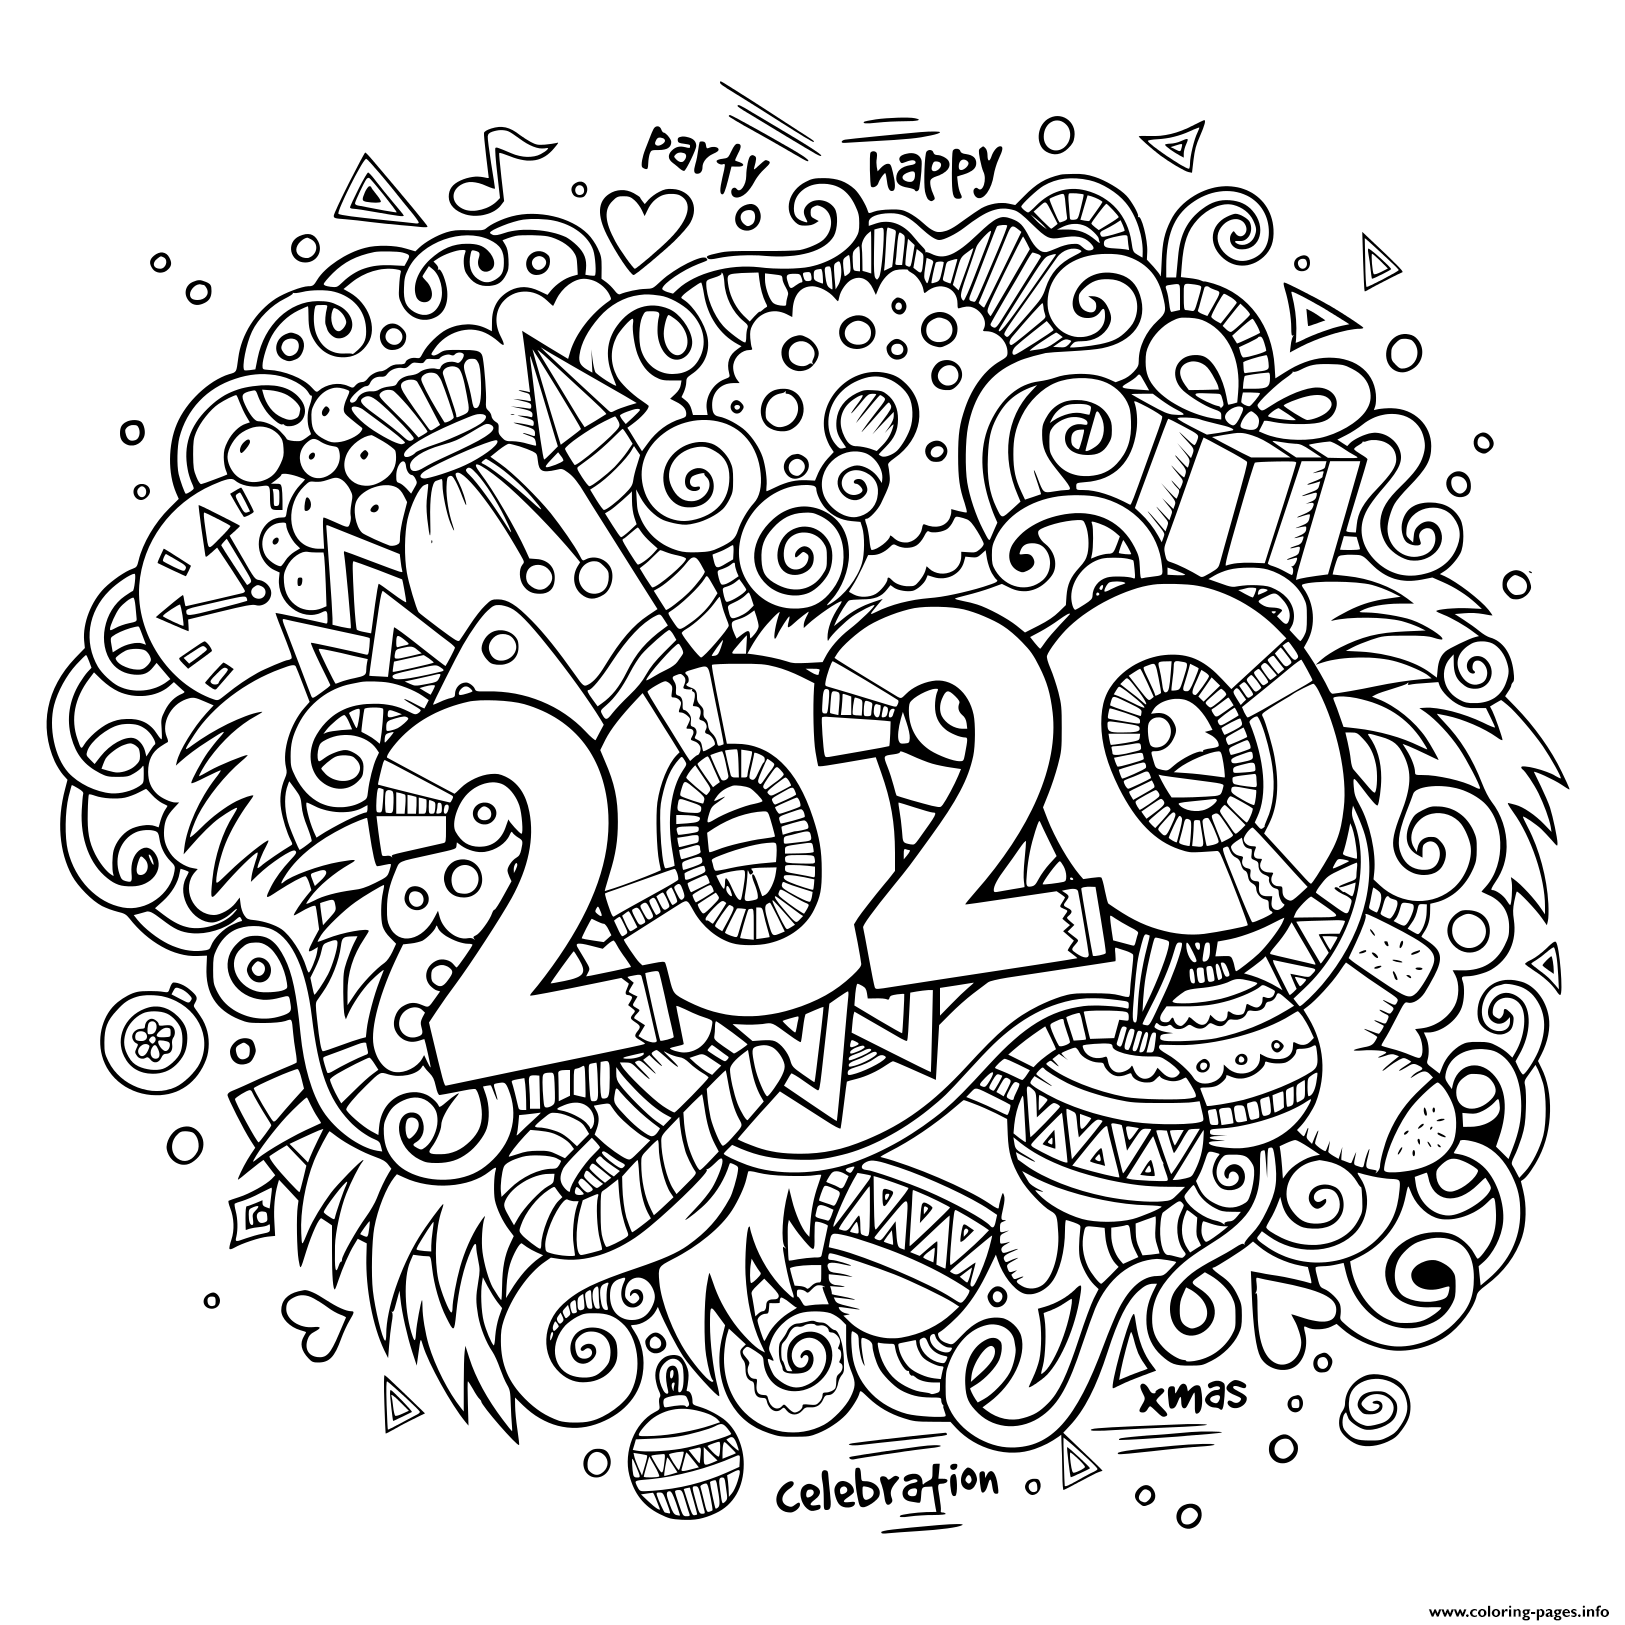 New Year 2020 Doodles Objects And Elements Poster Design ...